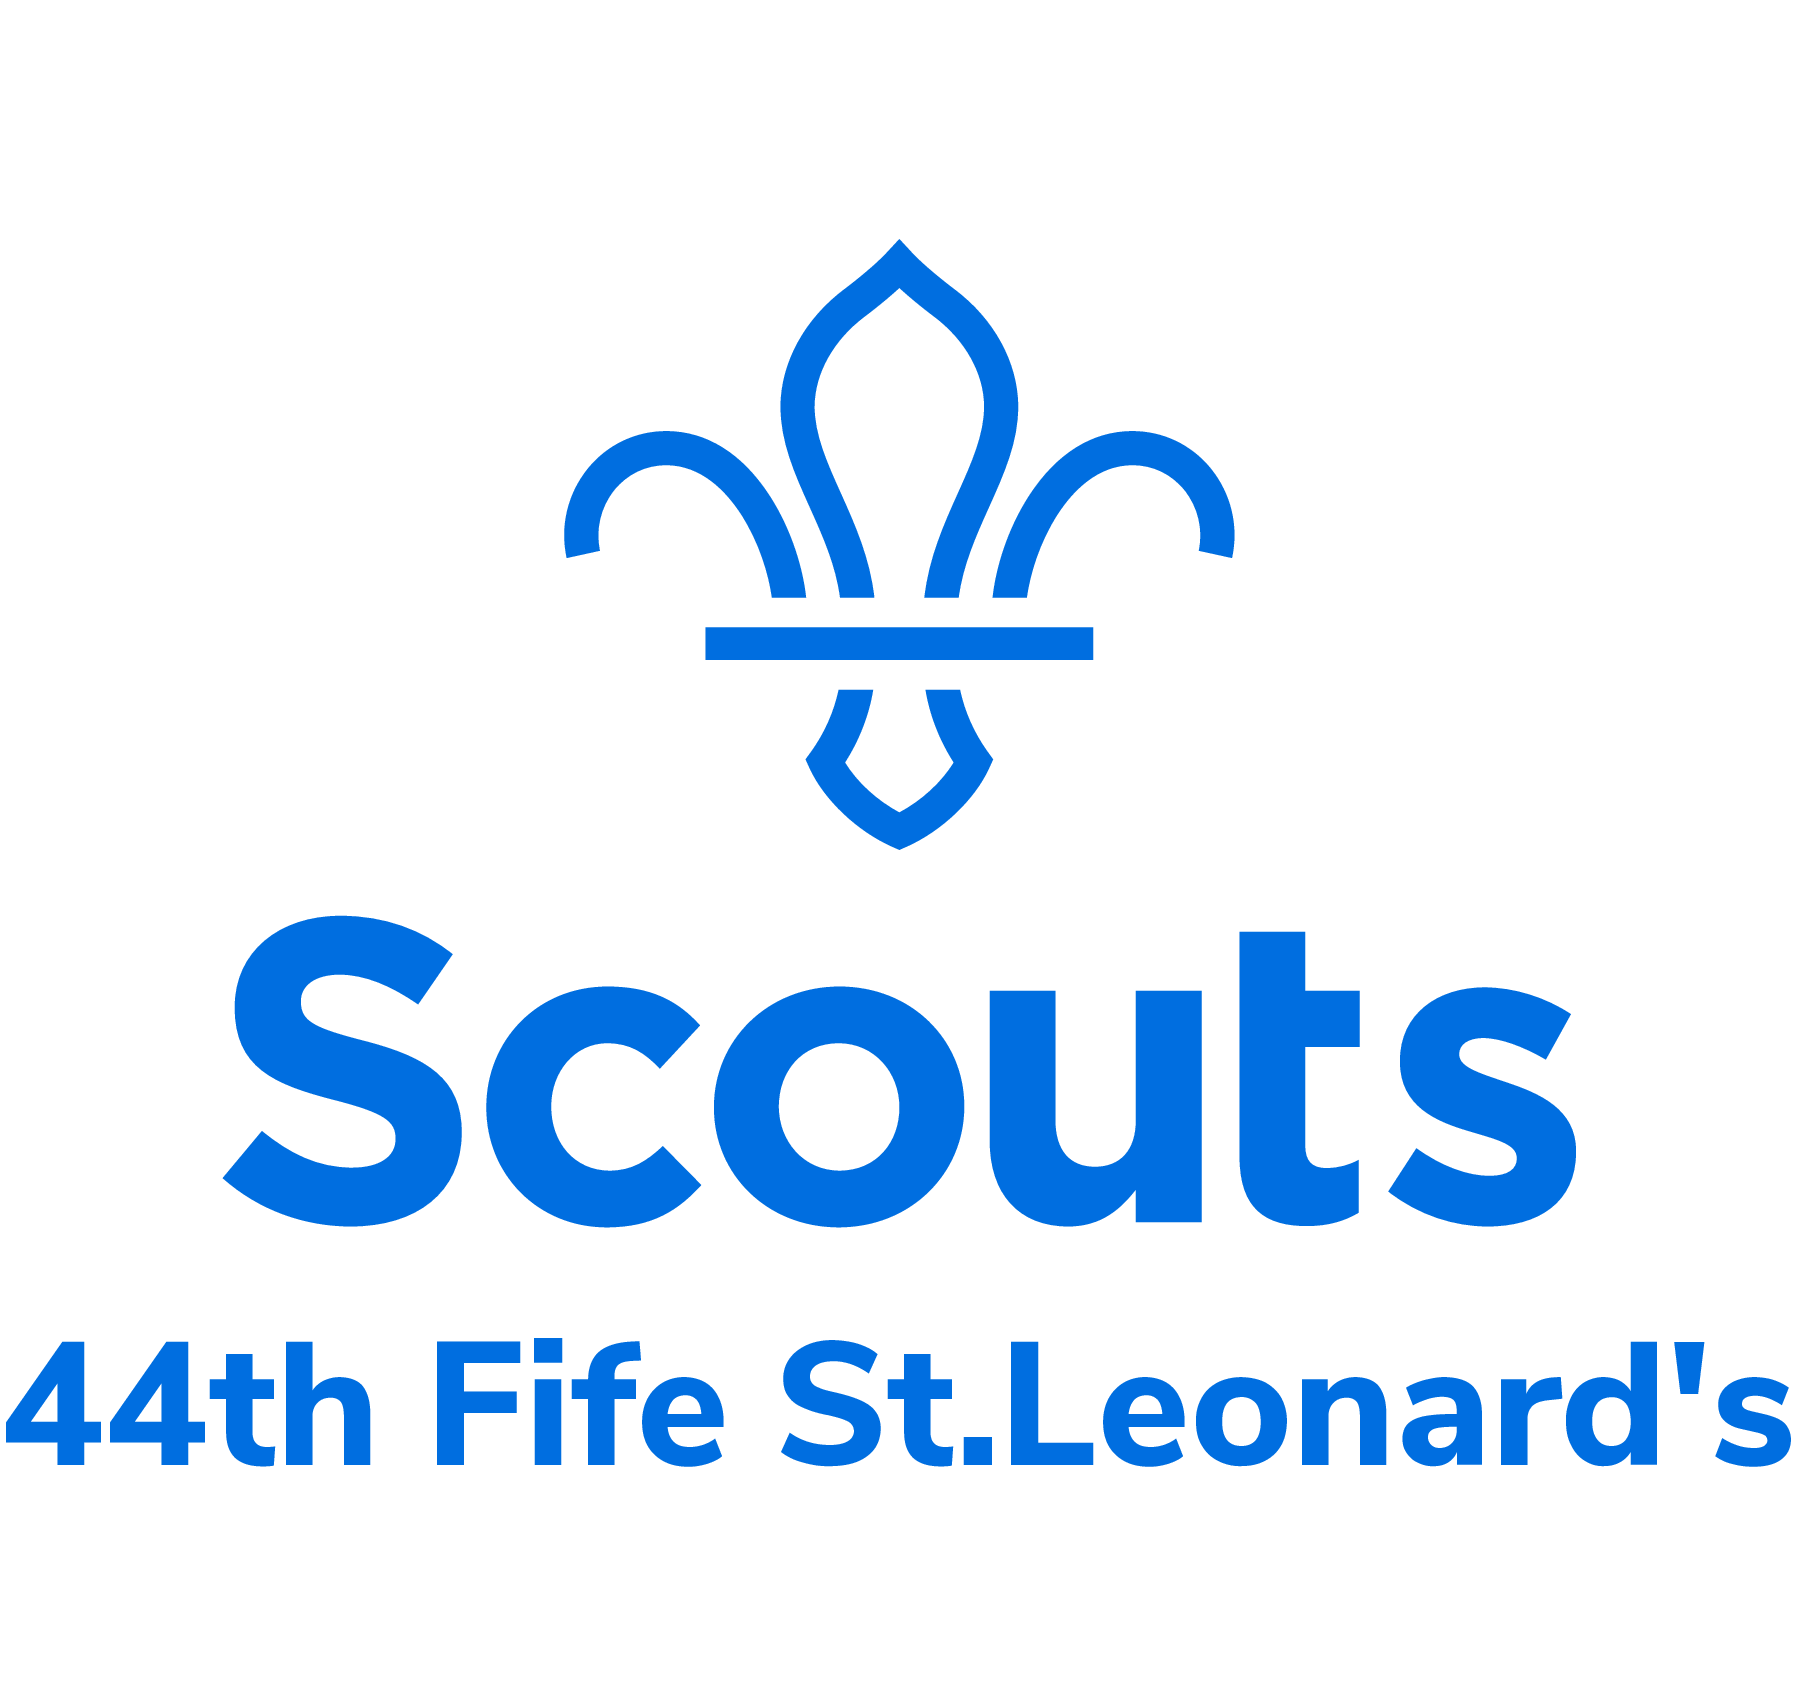 44thscouts